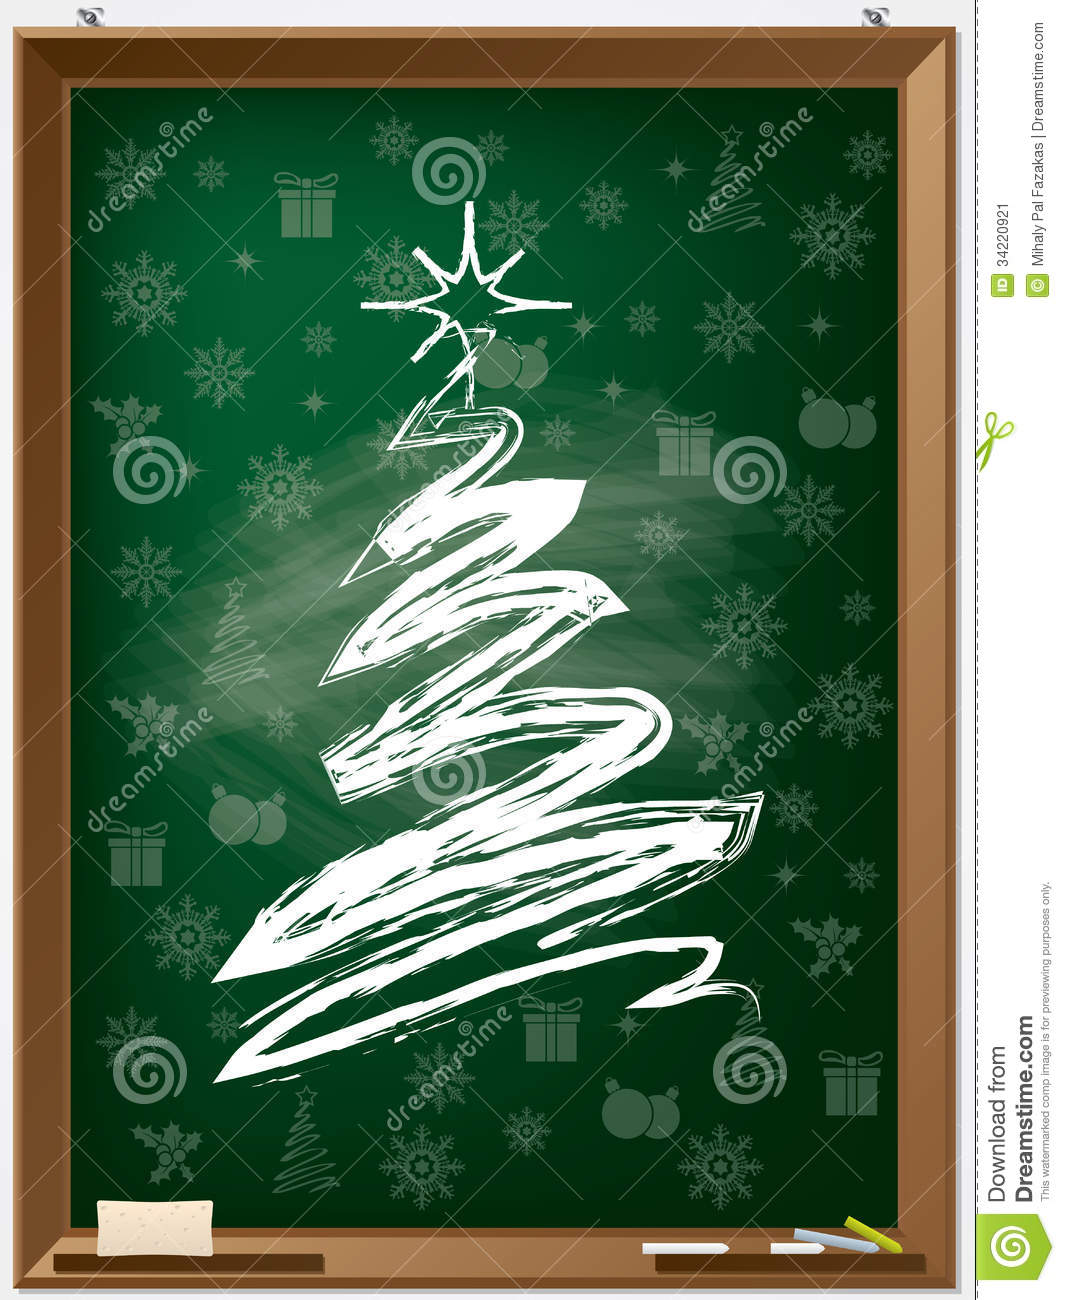 Chalk Christmas Tree On Chalkboard Stock Image - Image ...